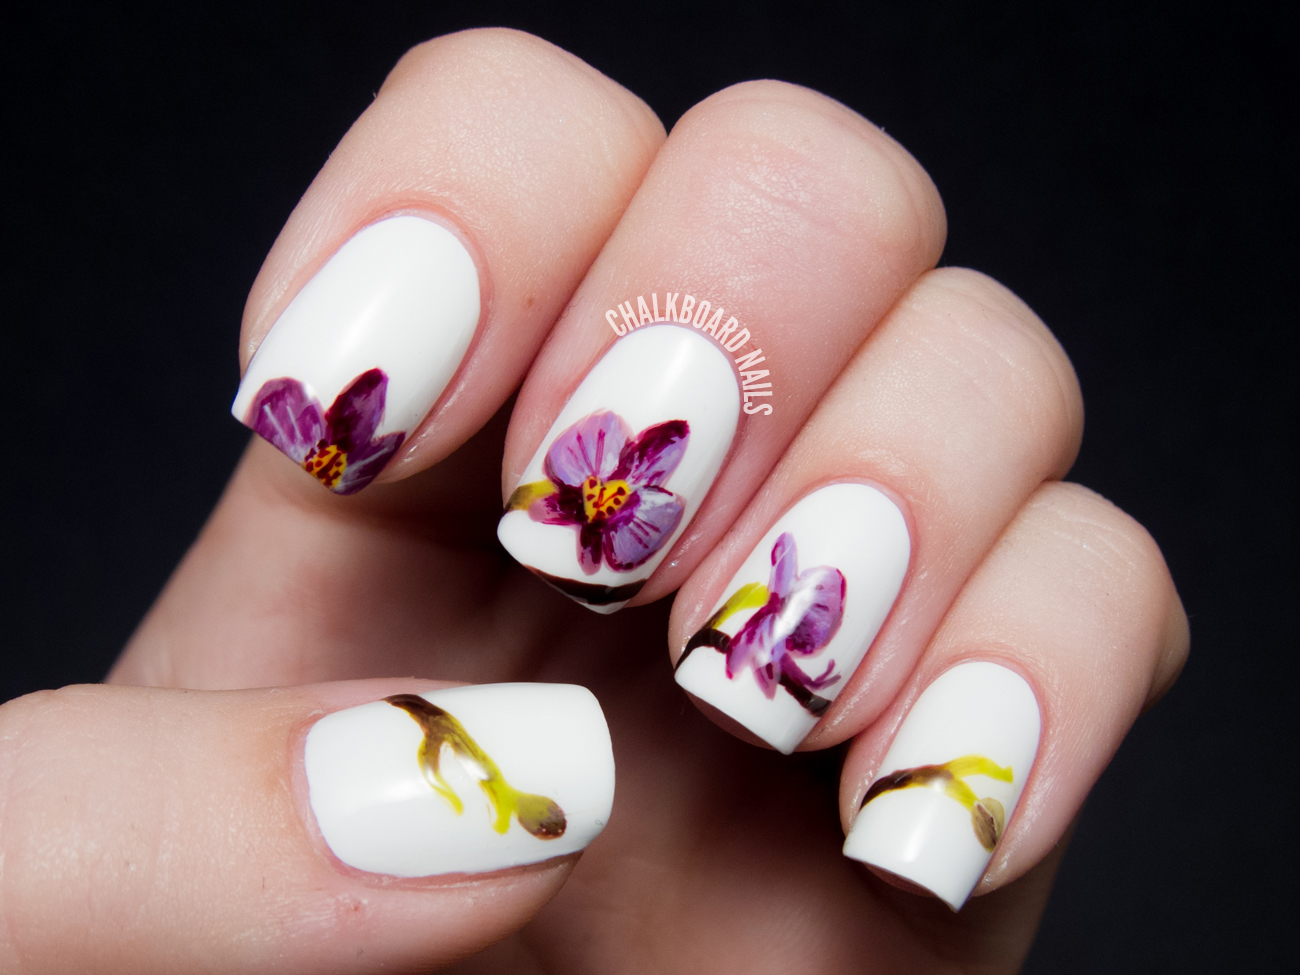 15 Most Wanted Nail Art Designs! photo 15